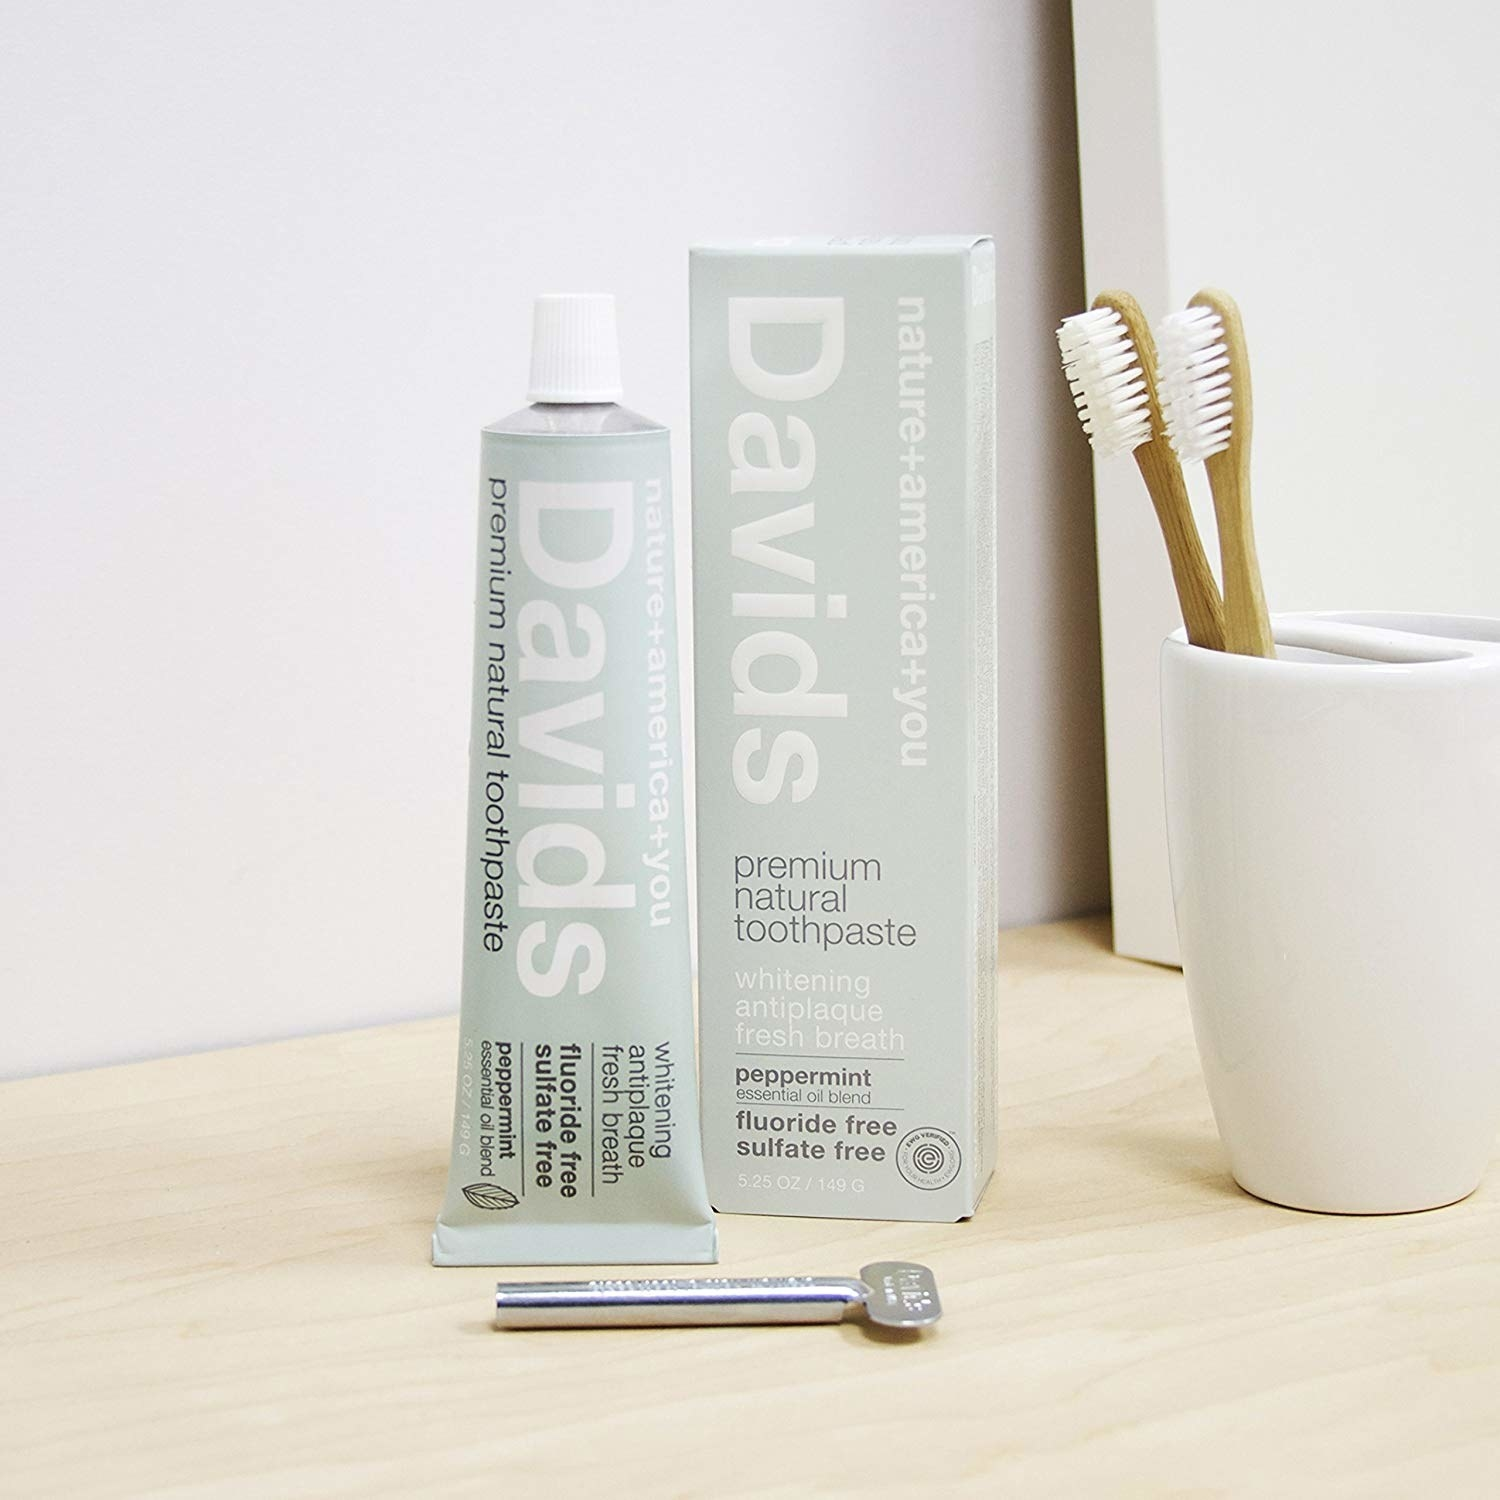 Product shot of the toothpaste in mint green packaging with clear white writing